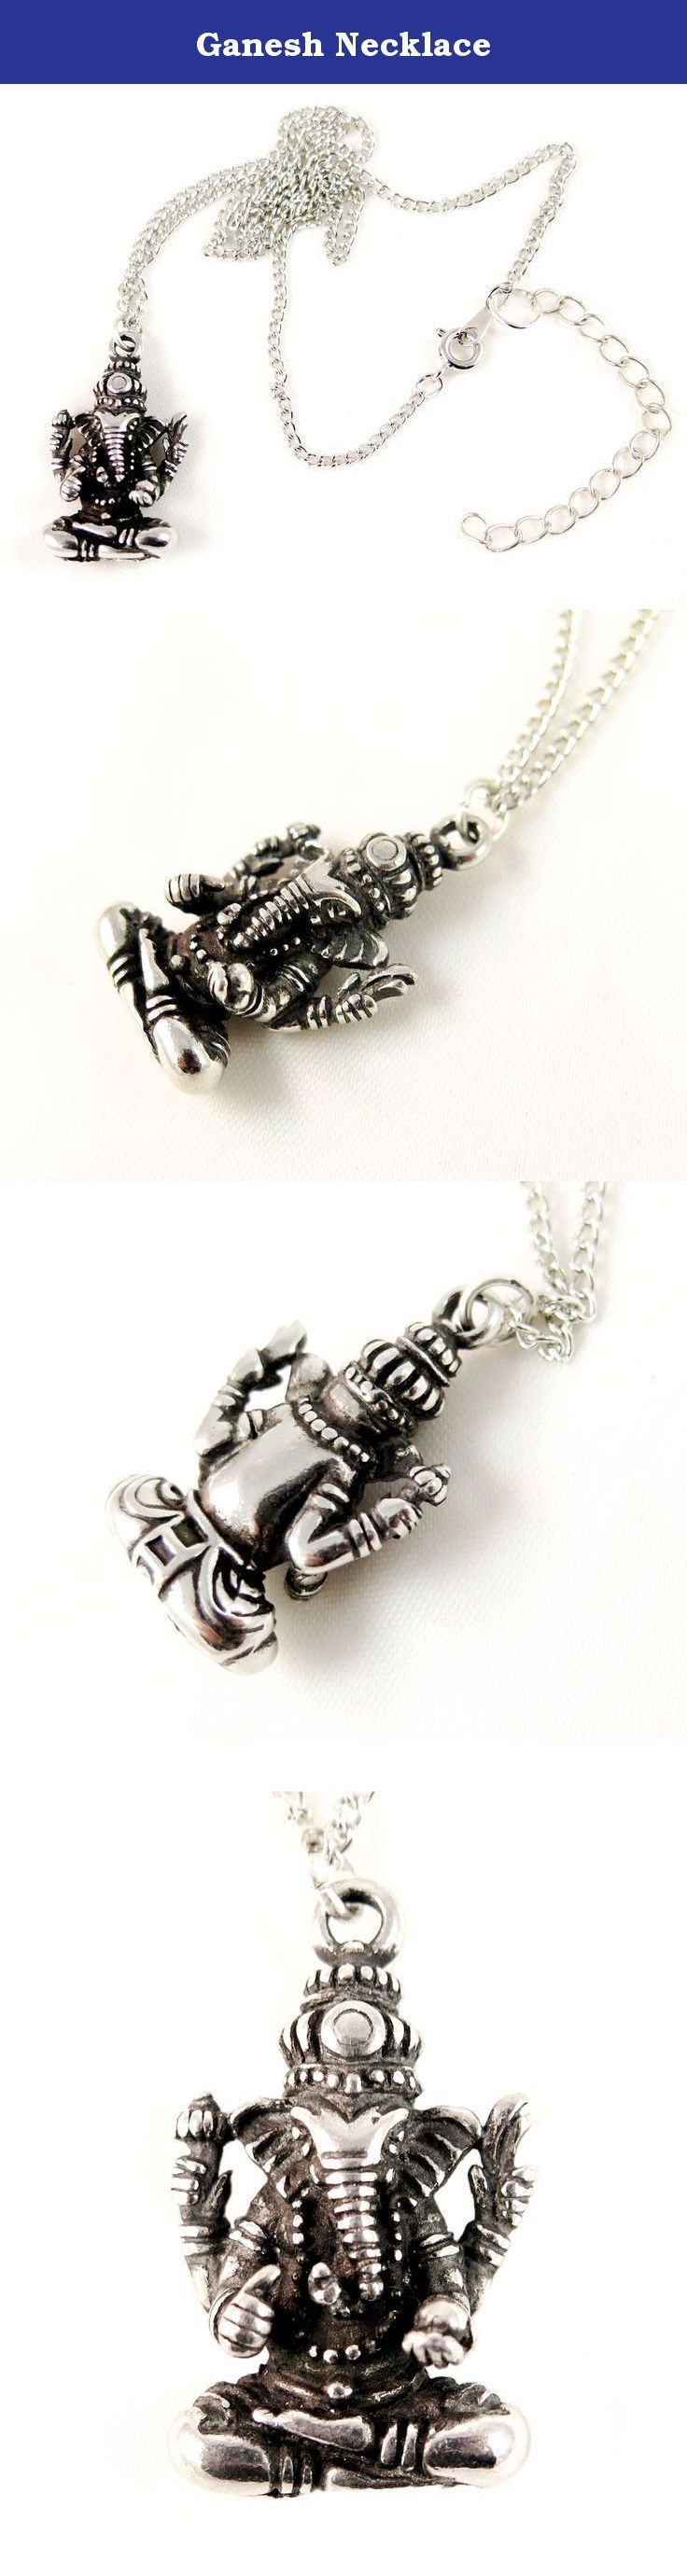 Ganesh Necklace. The Ganesh is made of a varnished clean pewter that will not change color or stain. The chain is made of copper and silver plated. Ganesh, the son of Shiva and Parvati is the god of success and wealth. The head of the elephant symbolize the soul-- the elephant totem signifies an ancient wisdom , while the human body symbolizes the illusion. Ganesh also know to bring good luck and remove obstacles. The trunk represents OM, the perfect sound of creation.